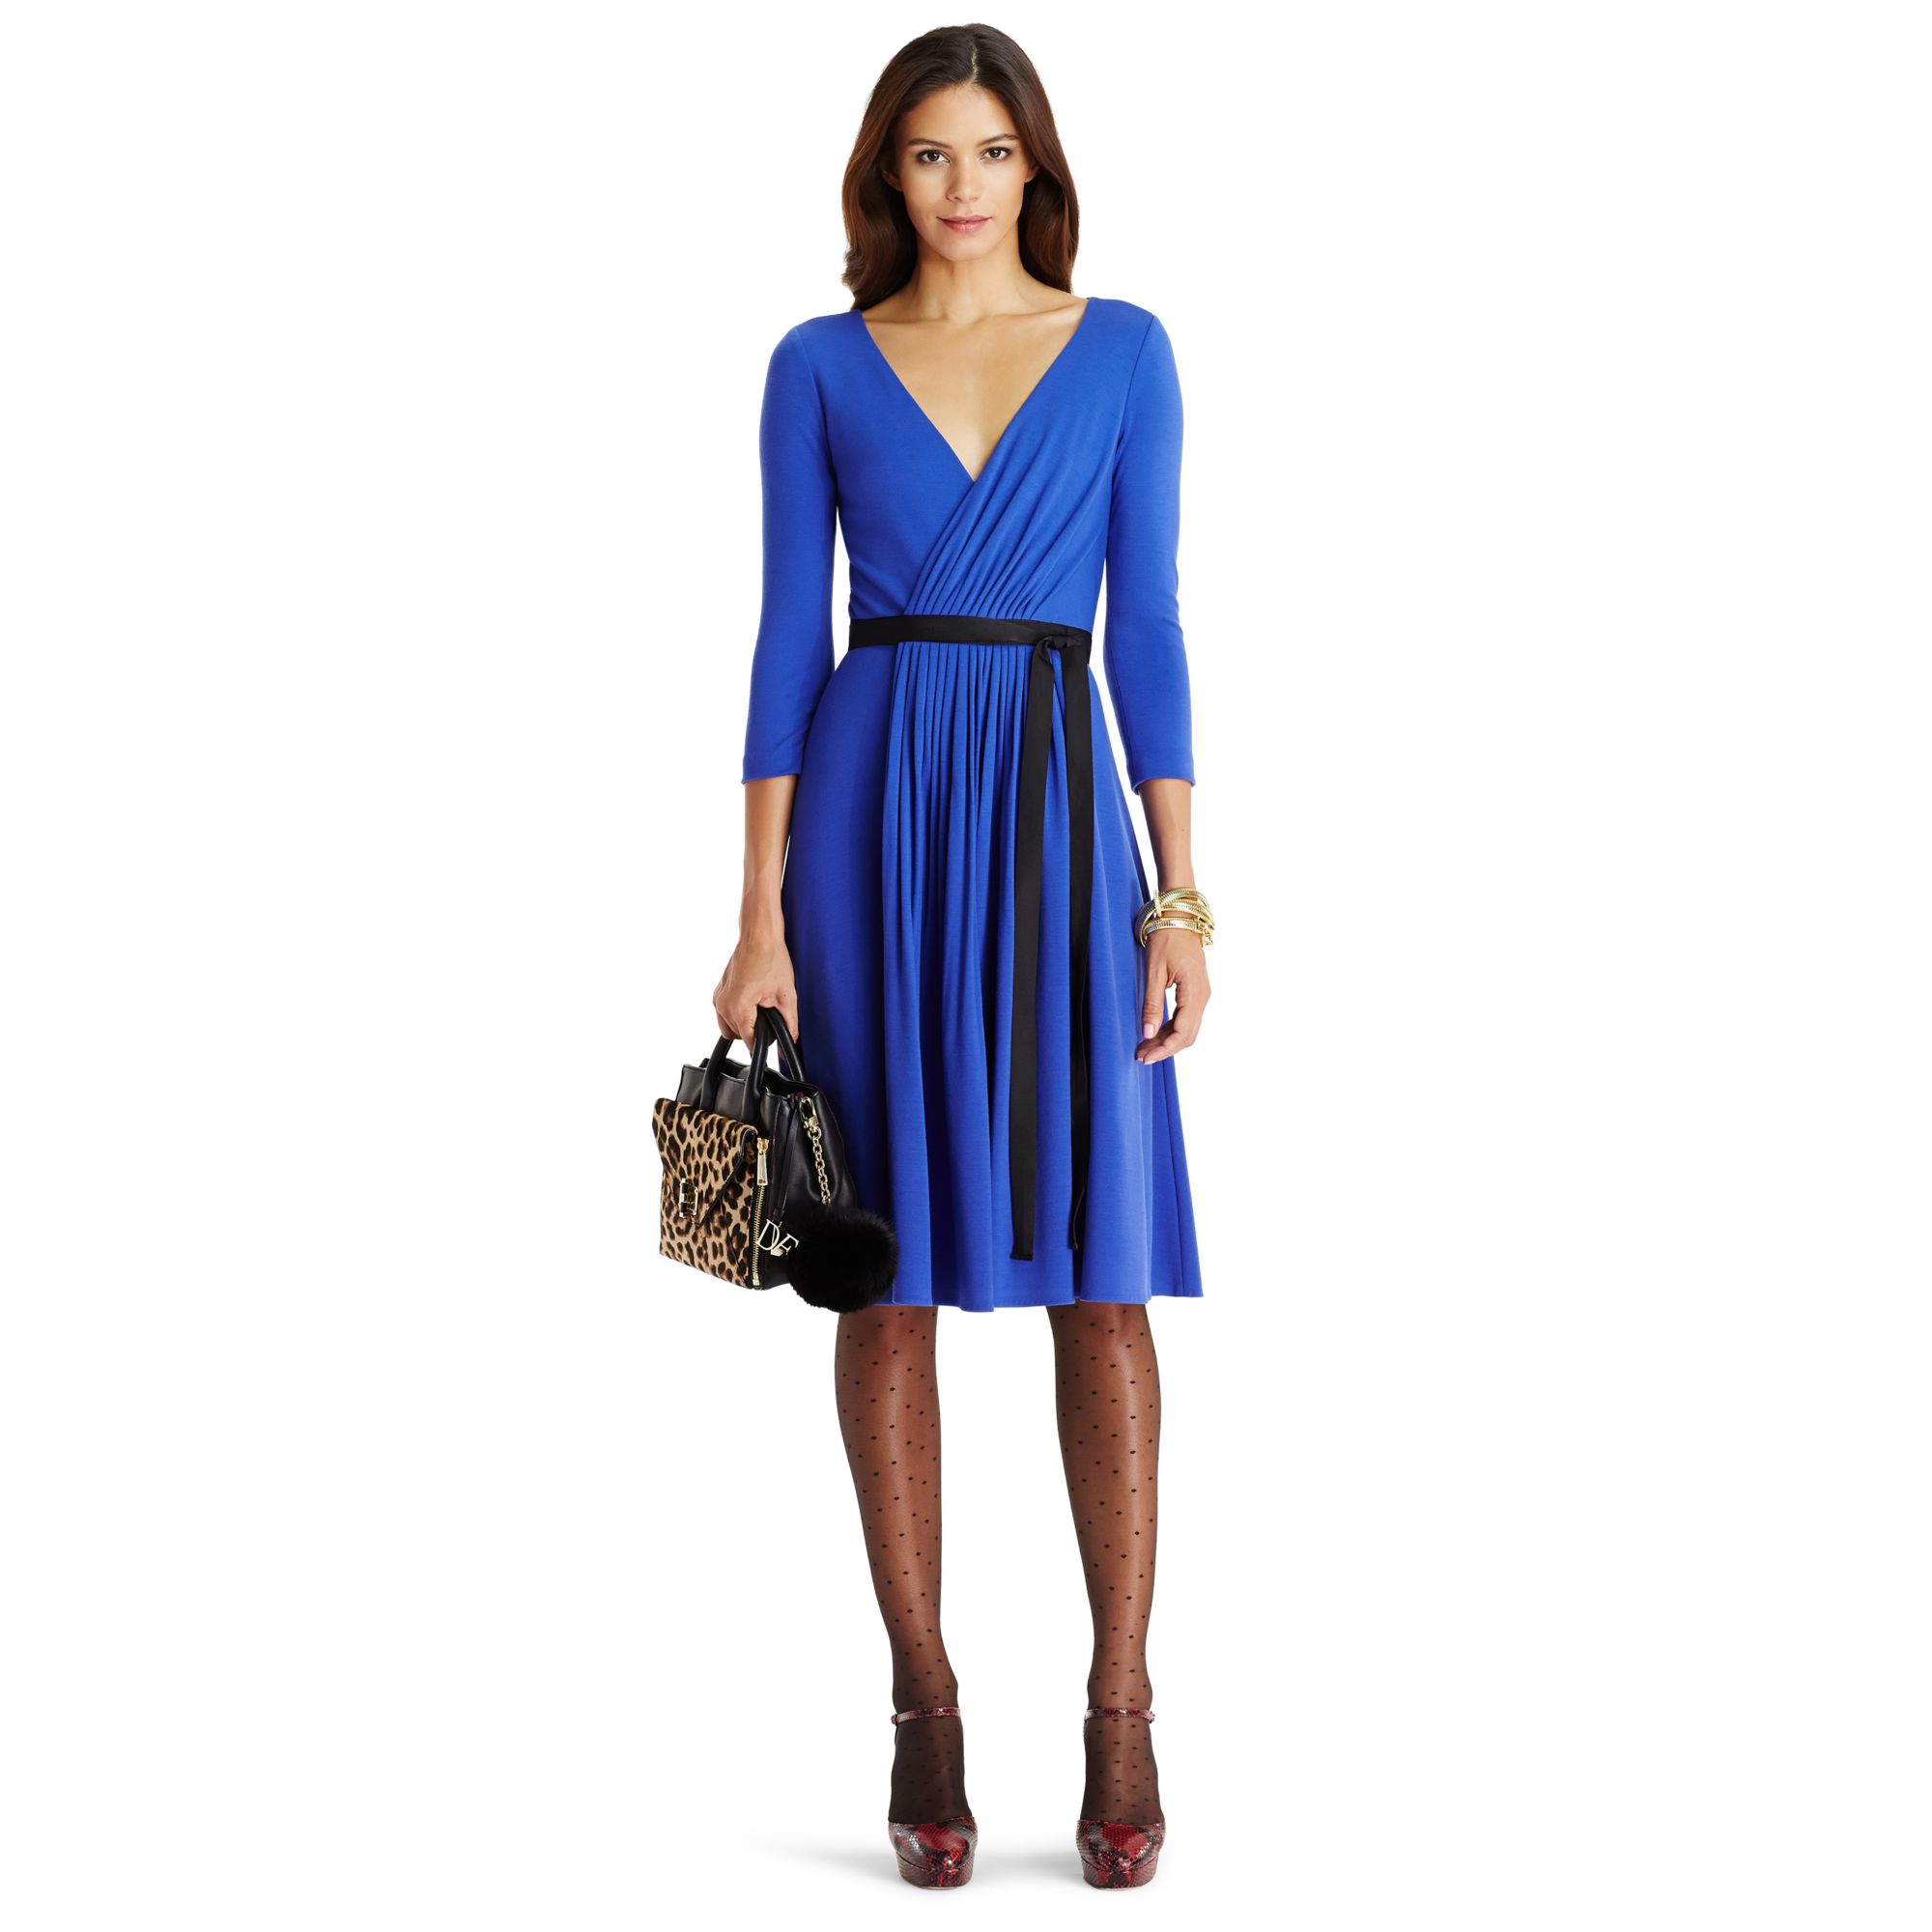 Lyst diane von furstenberg dvf seduction wool wrap dress for Diane von furstenberg clothes